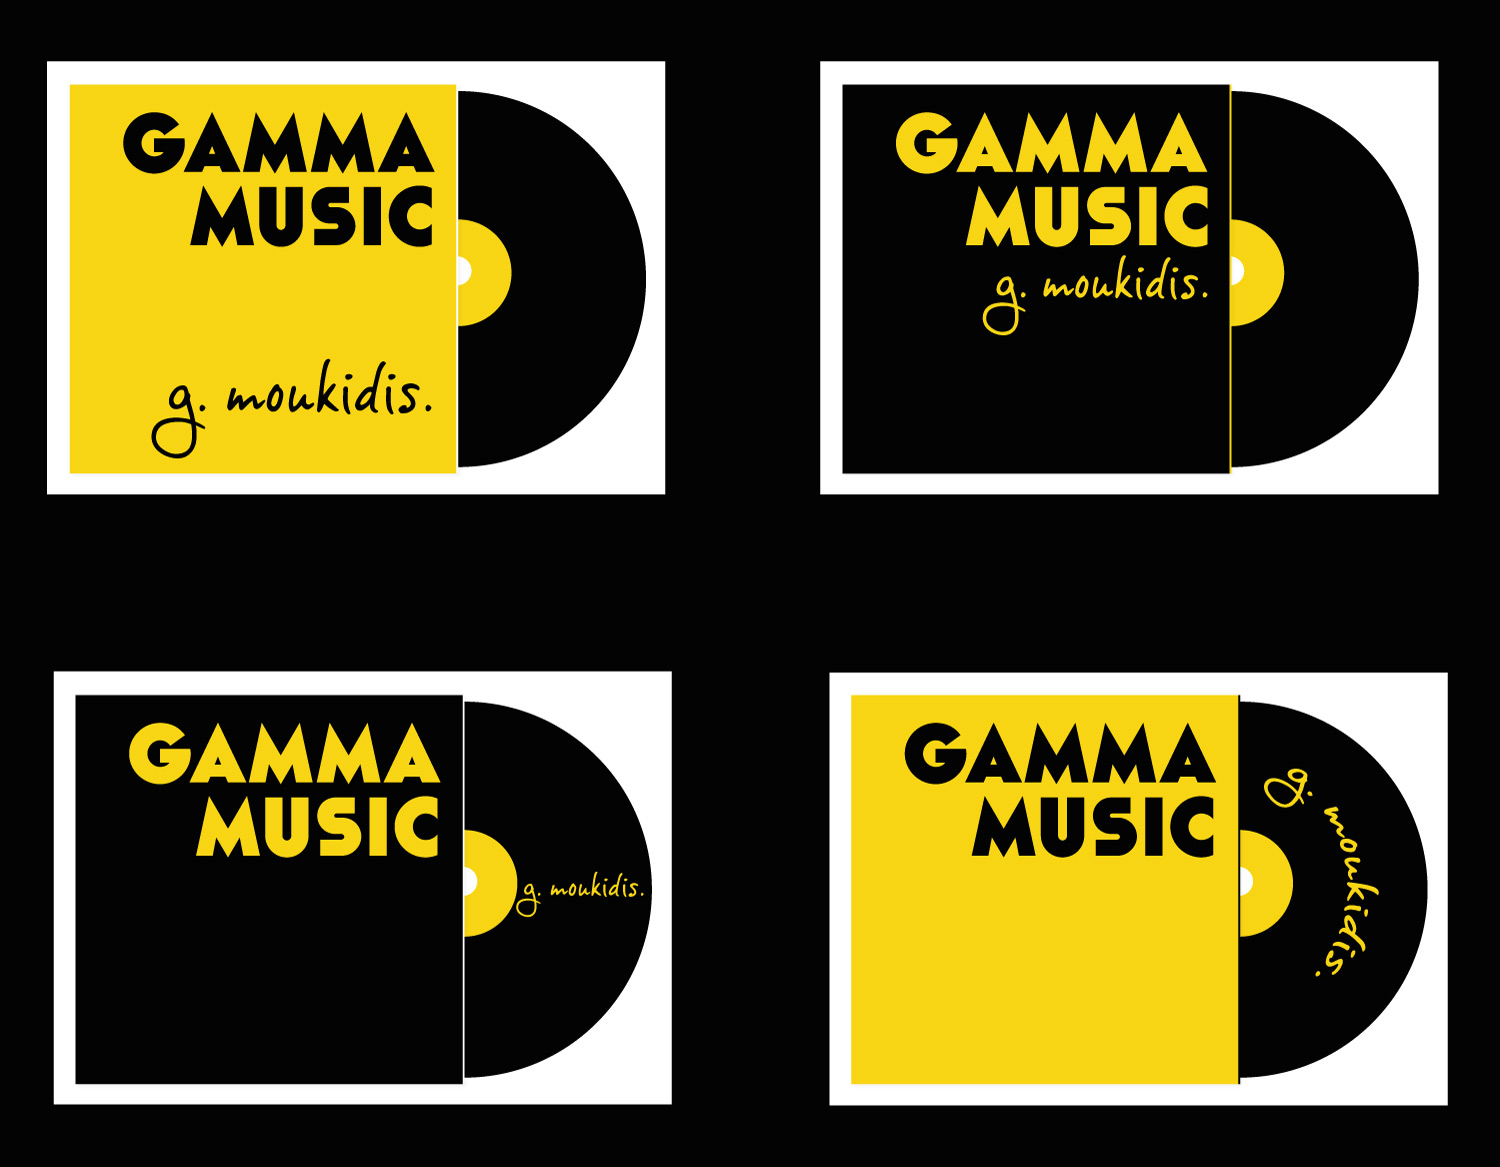 Gamma Music music production company logo drafts